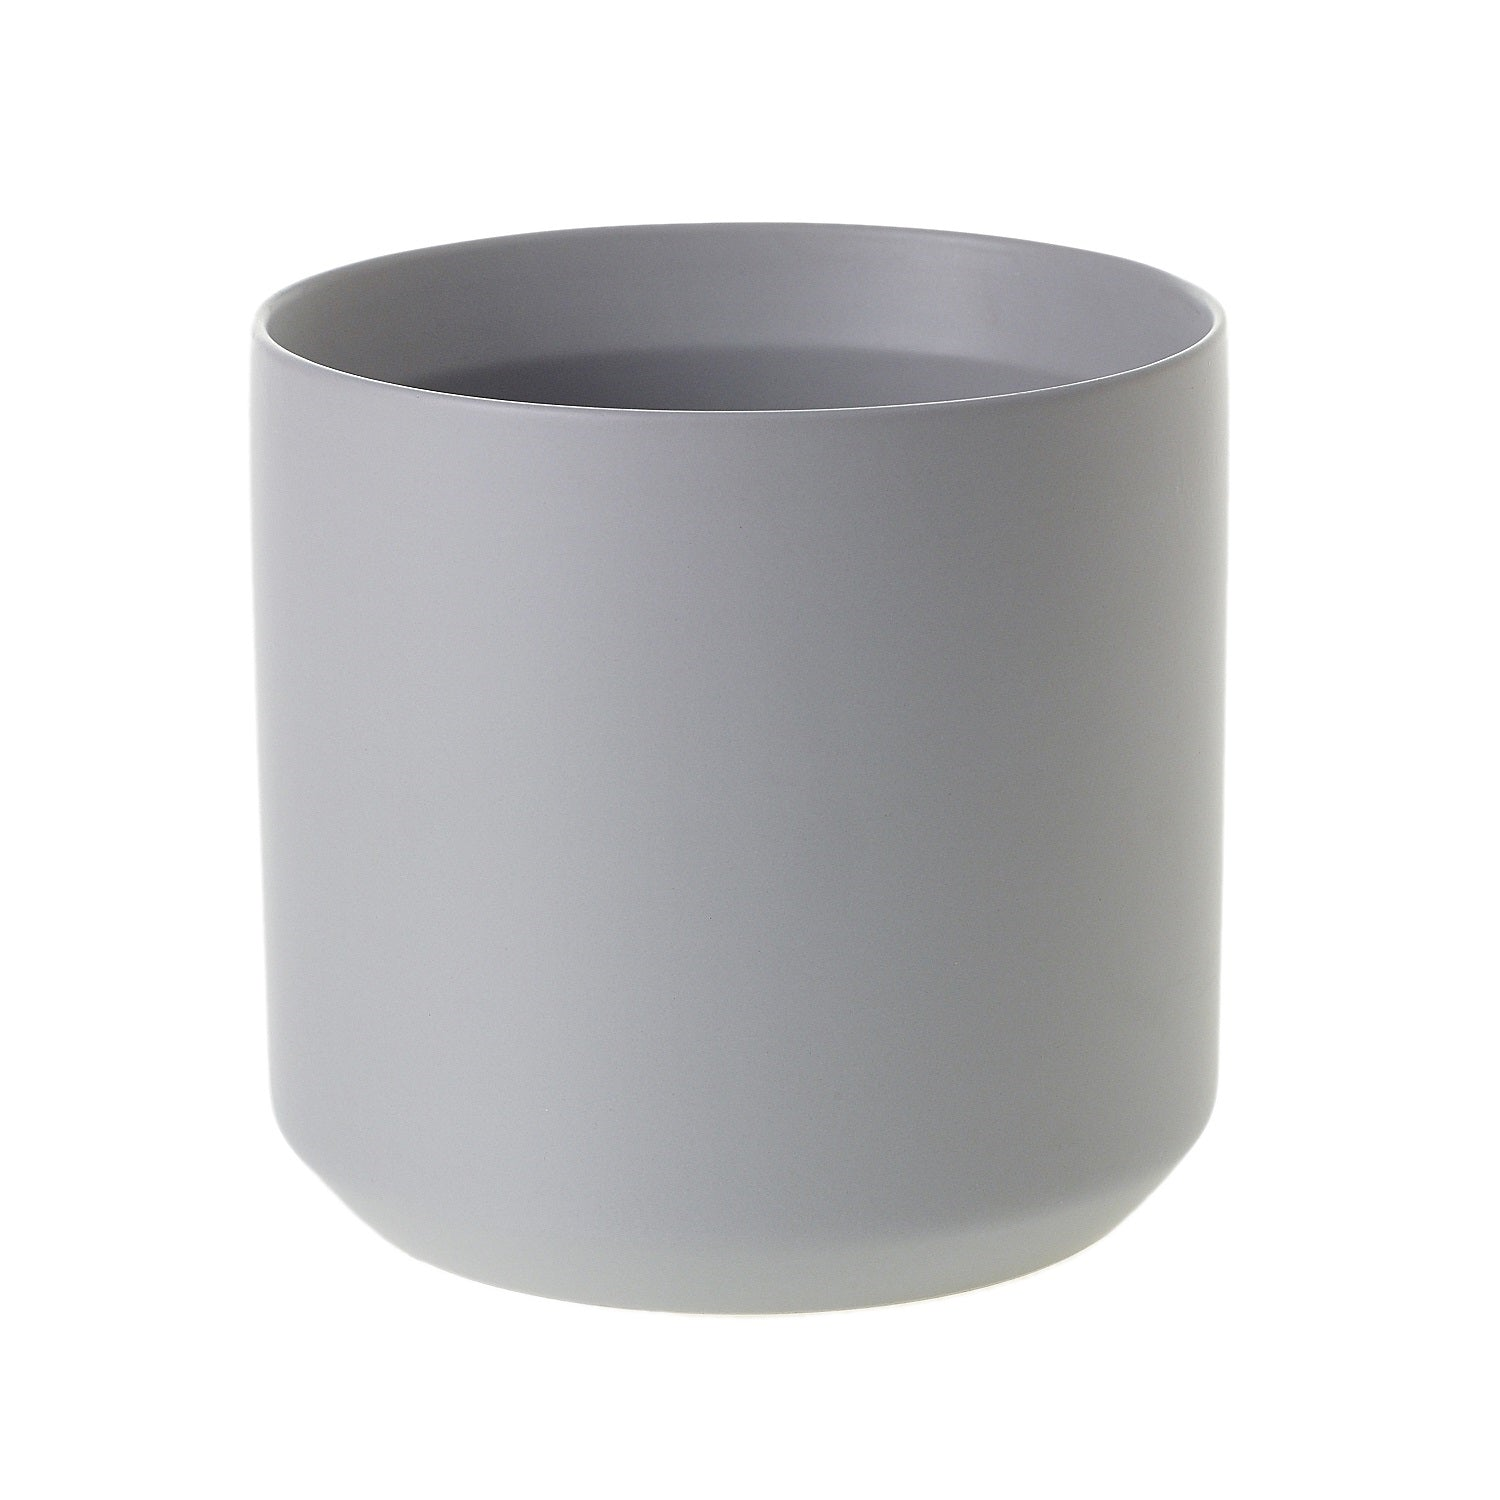 "6"" Cylinder Pot in Grey"